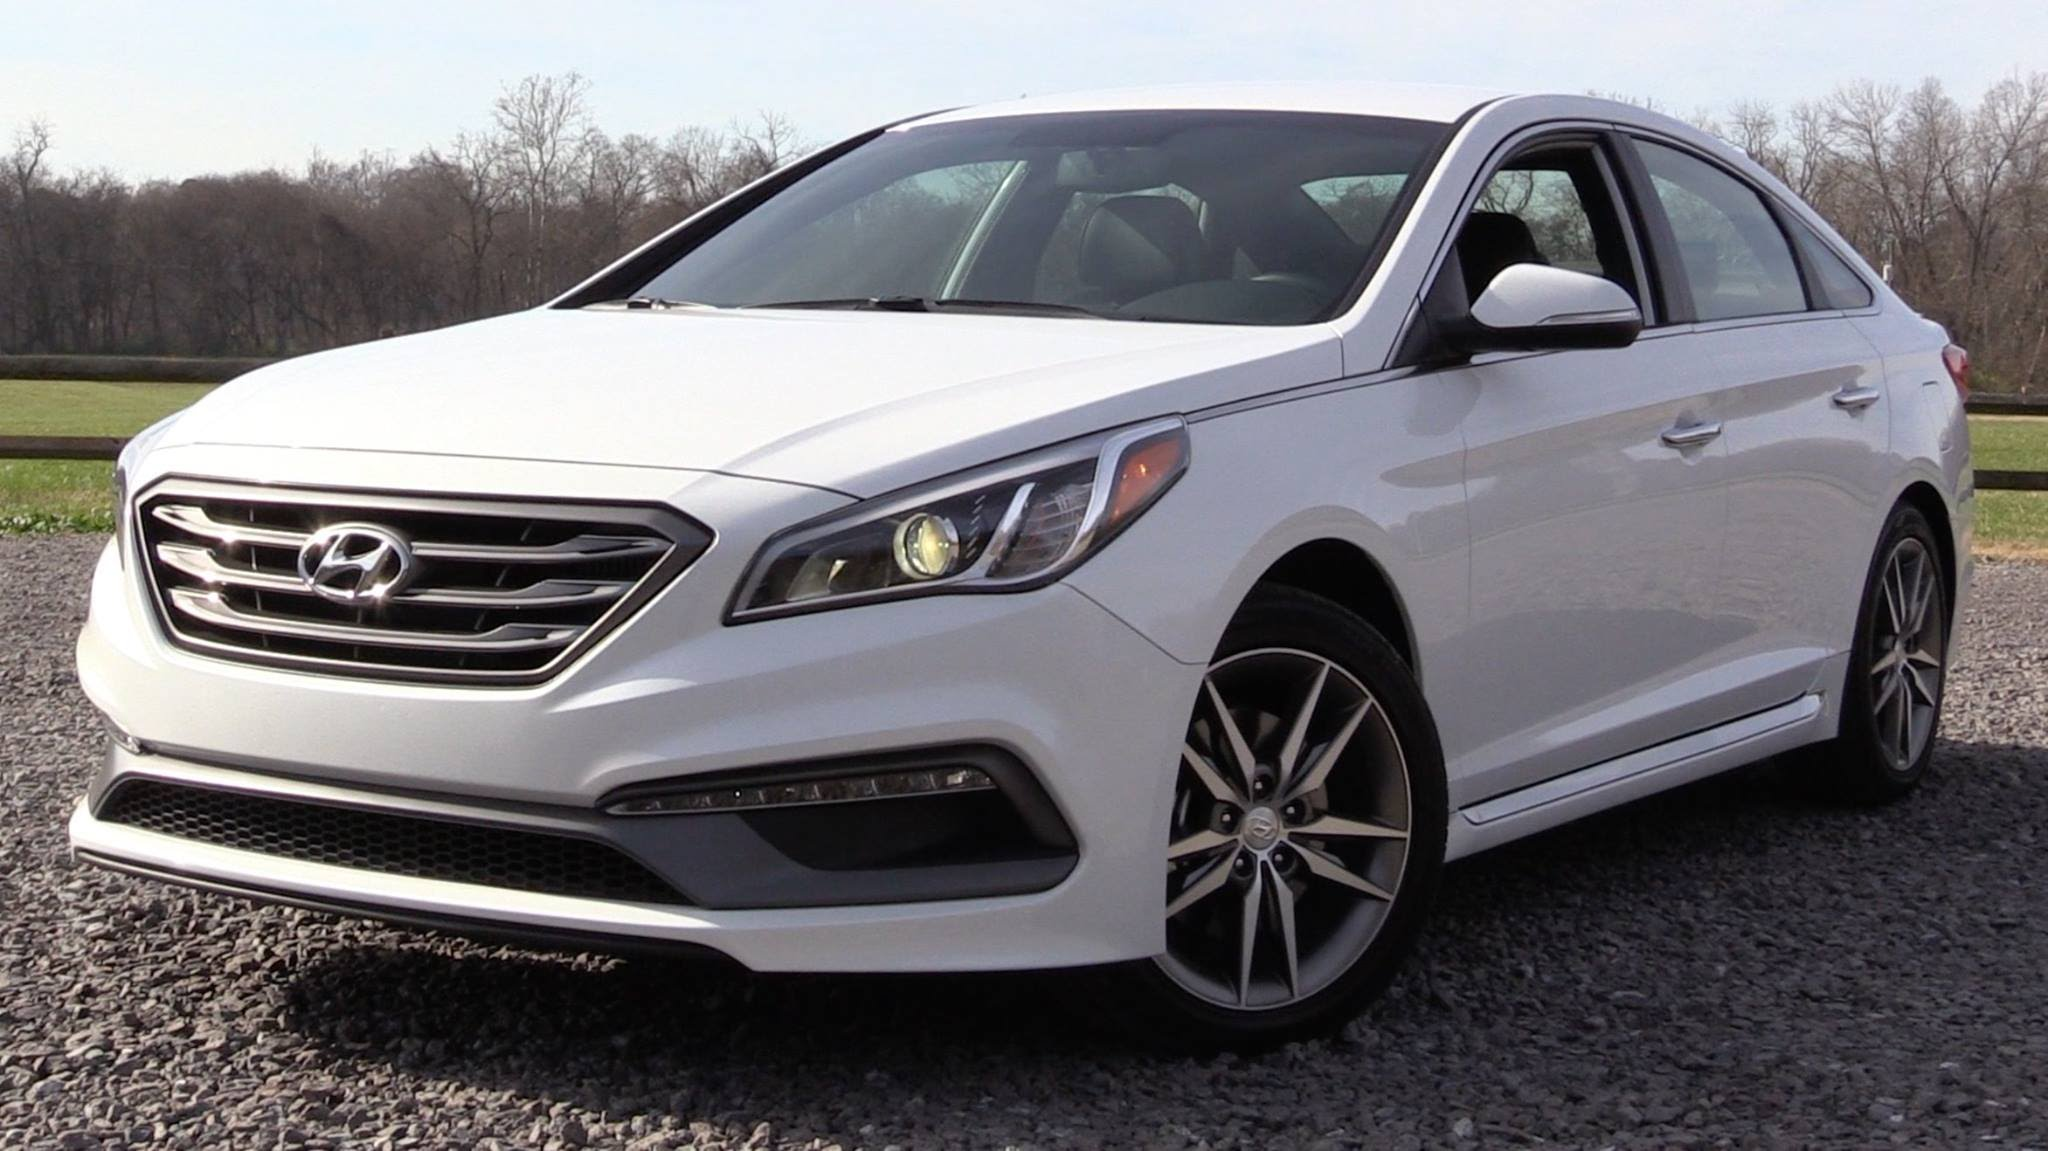 2016 hyundai sonata sport 2 0t review. Black Bedroom Furniture Sets. Home Design Ideas